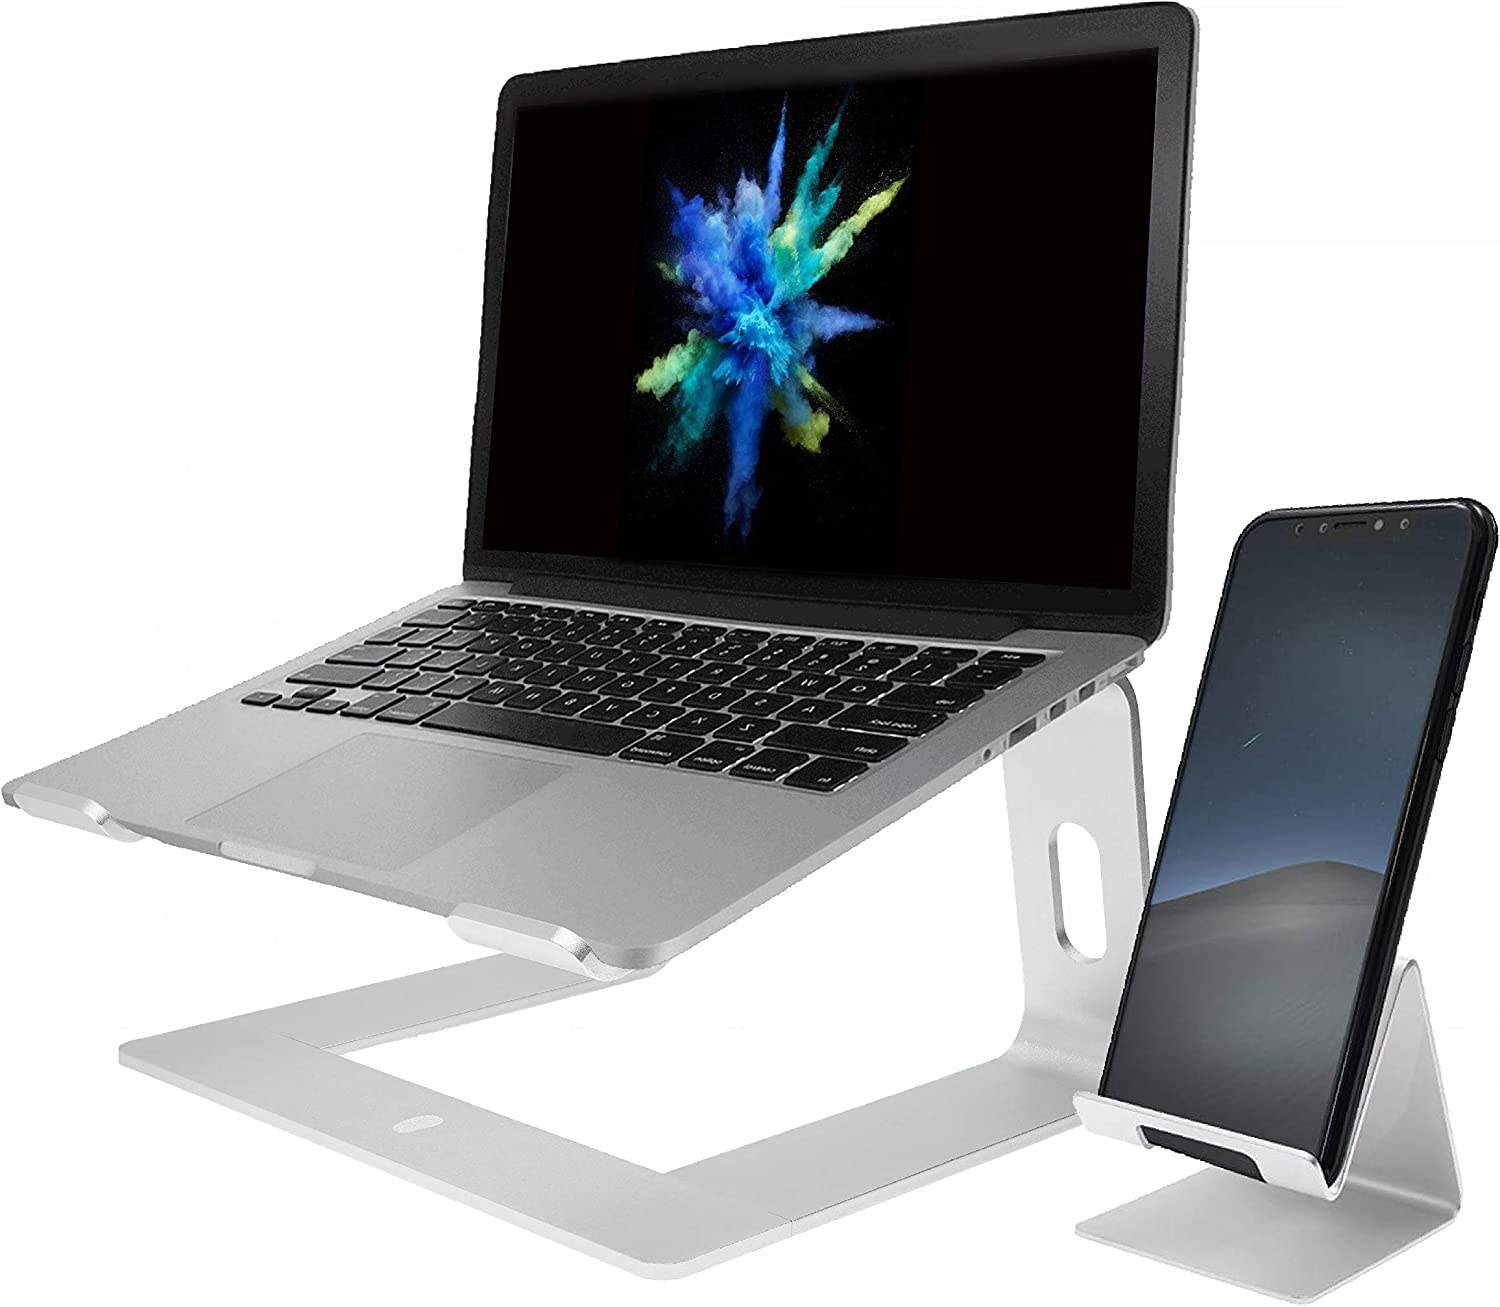 StepUp 2in1 Laptop Stand for Desk and Phone Holder, Docking Ergonomic Aluminum Elevated Stands, Portable Computer Riser, Fits All Raised Devices-Cell Phone, ipad, Notebook, MacBook Pro 10